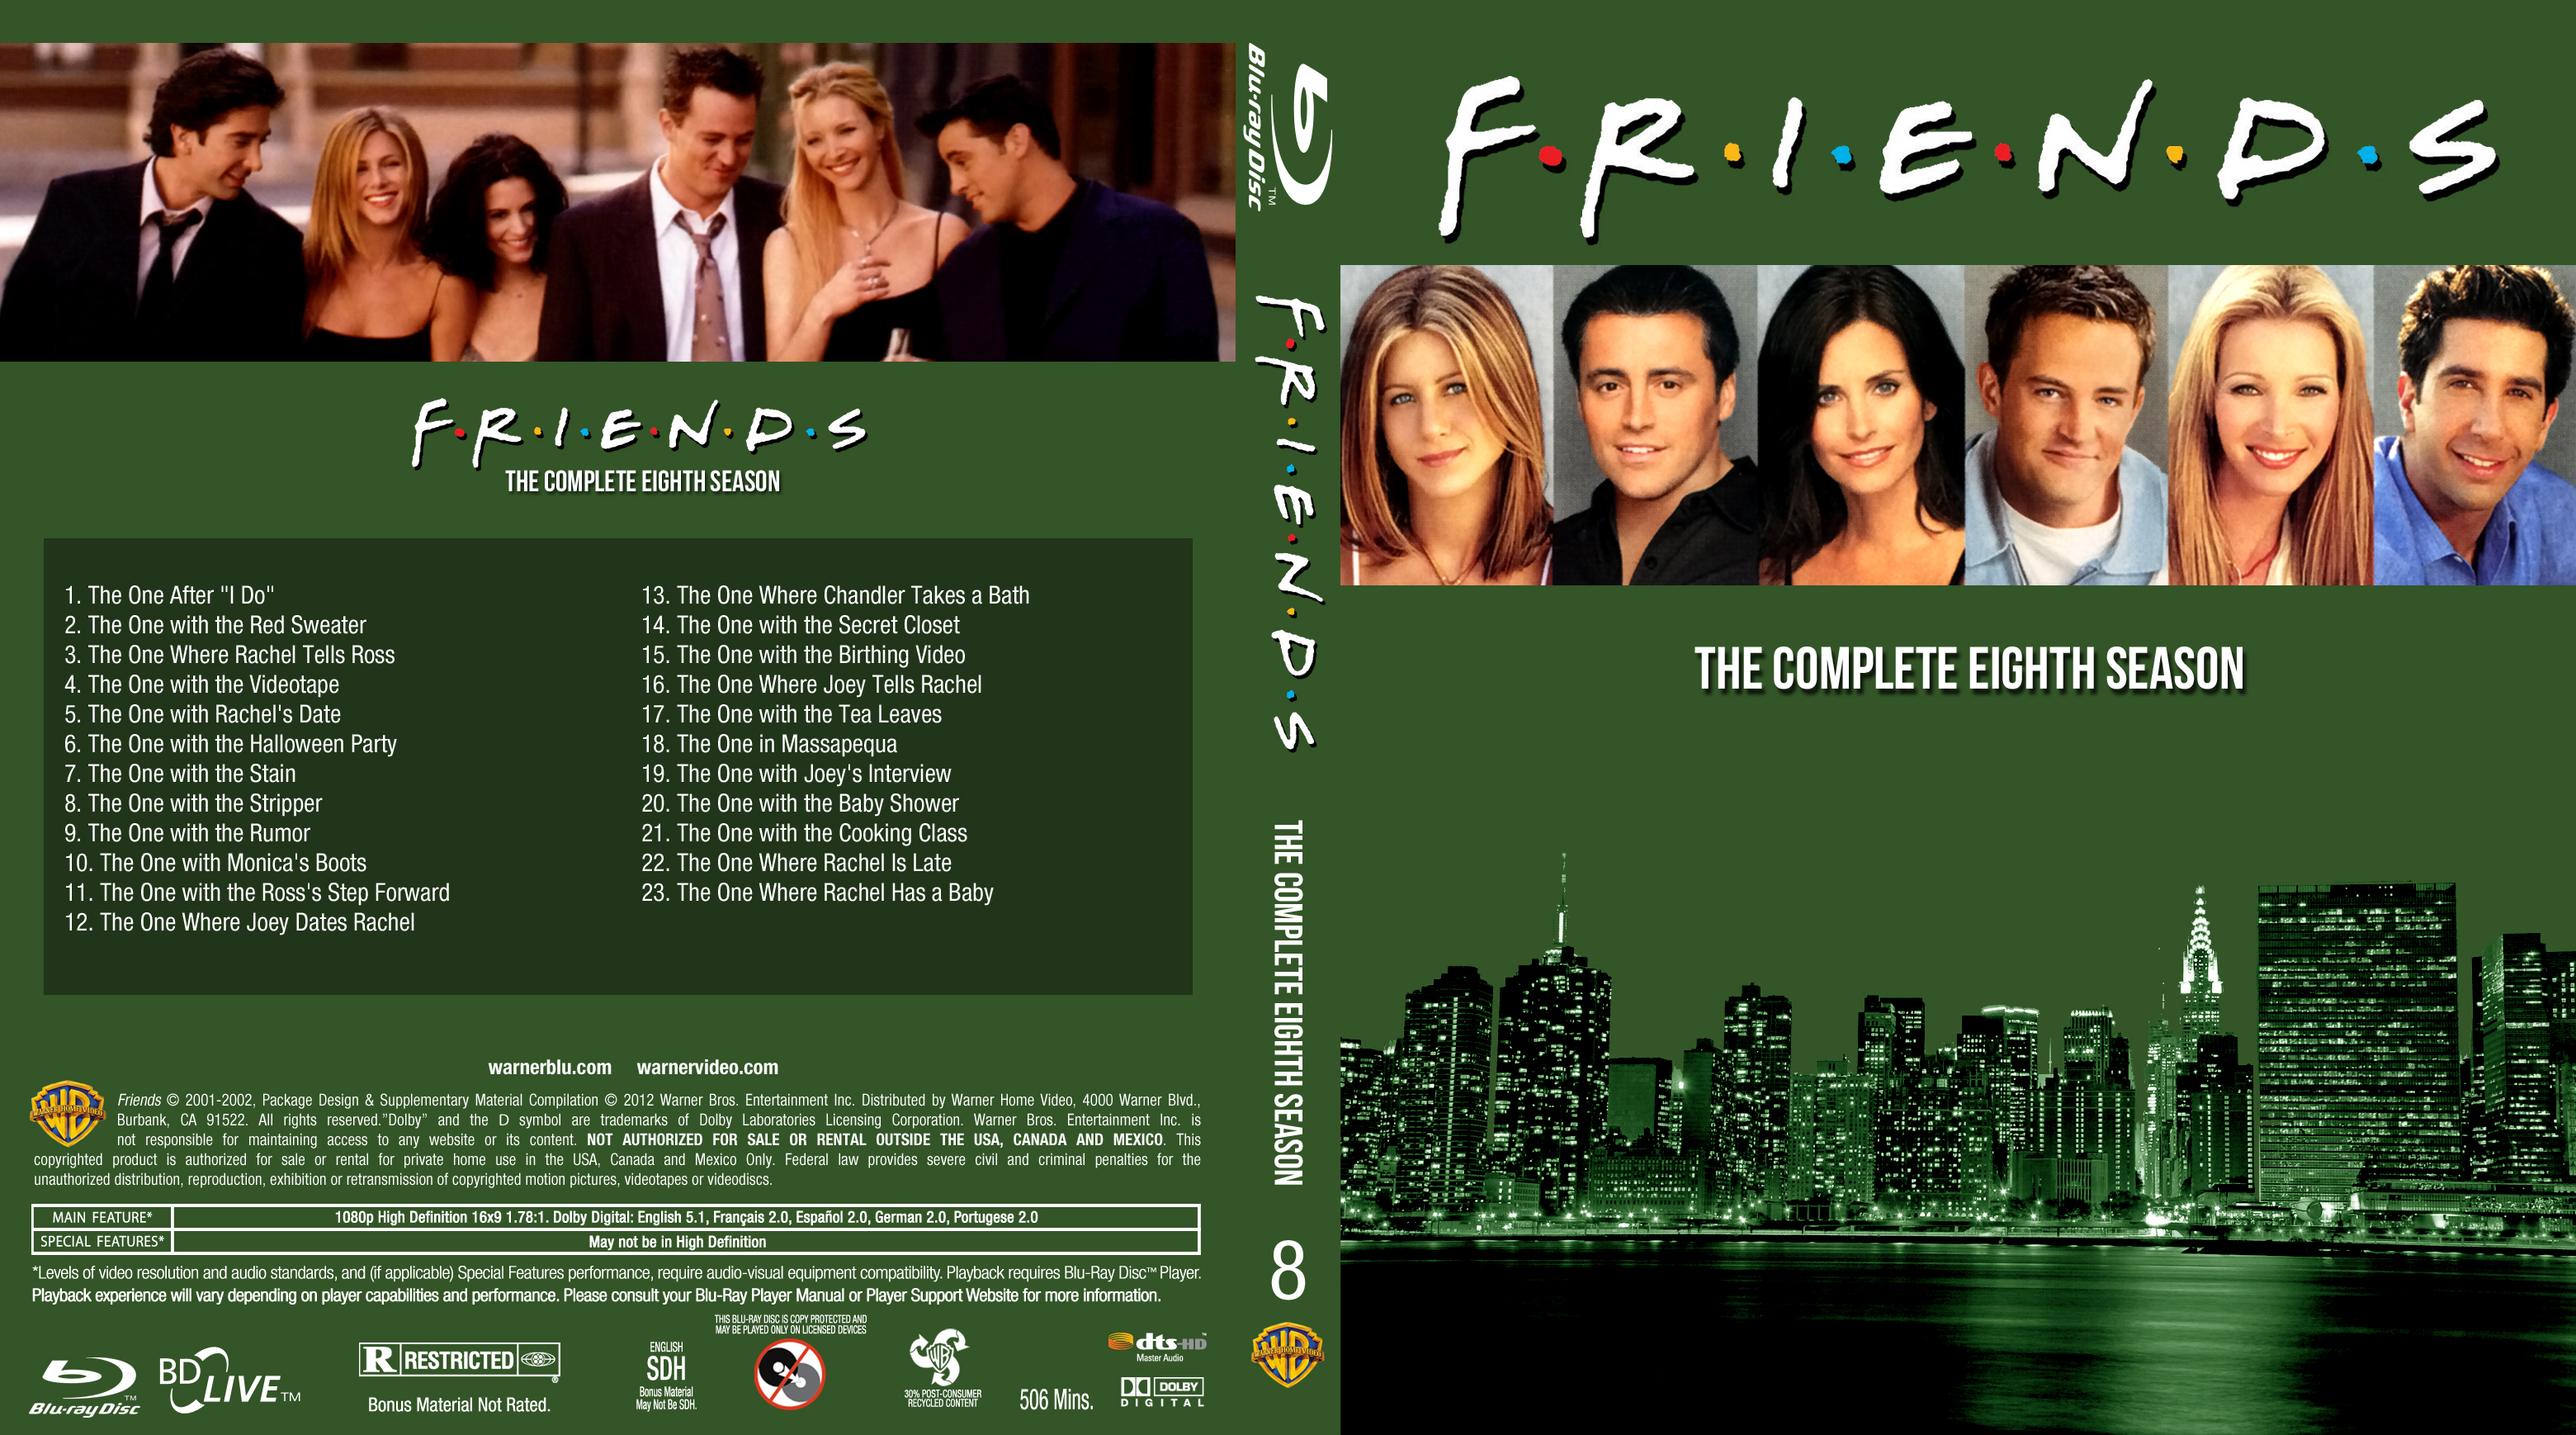 Friends Dvd Complete Series 1 10 – HD Wallpapers